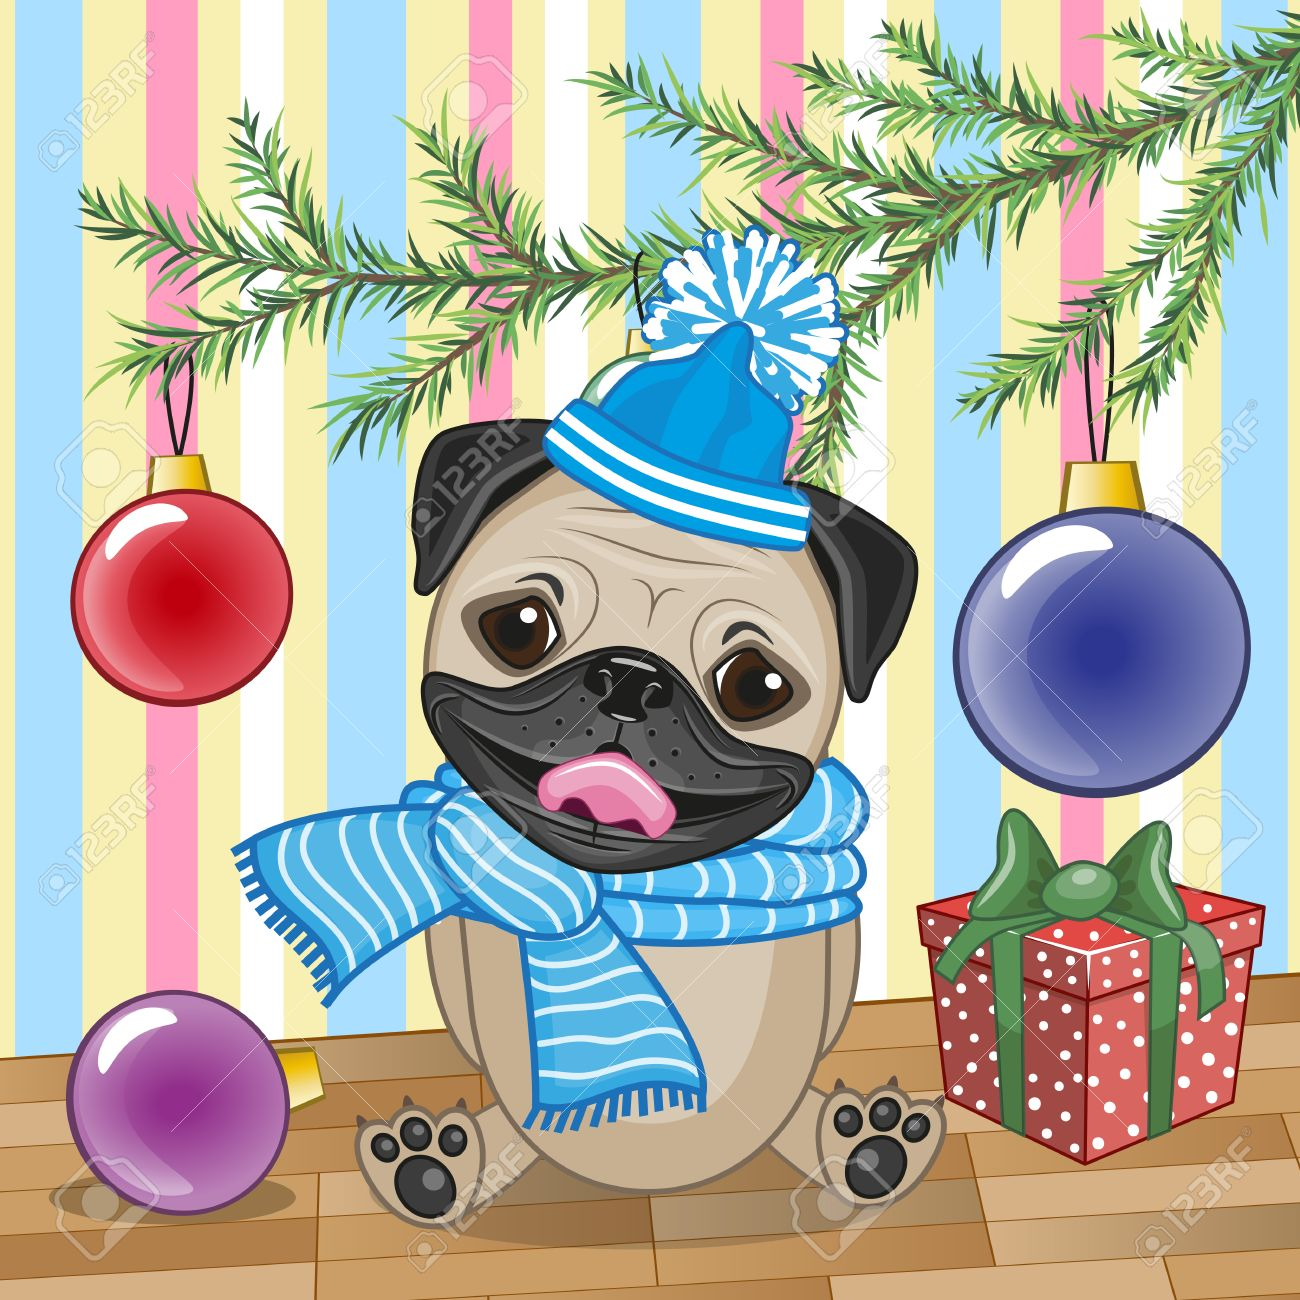 Cute Pug Dog Under The Christmas Tree Royalty Free Cliparts ...